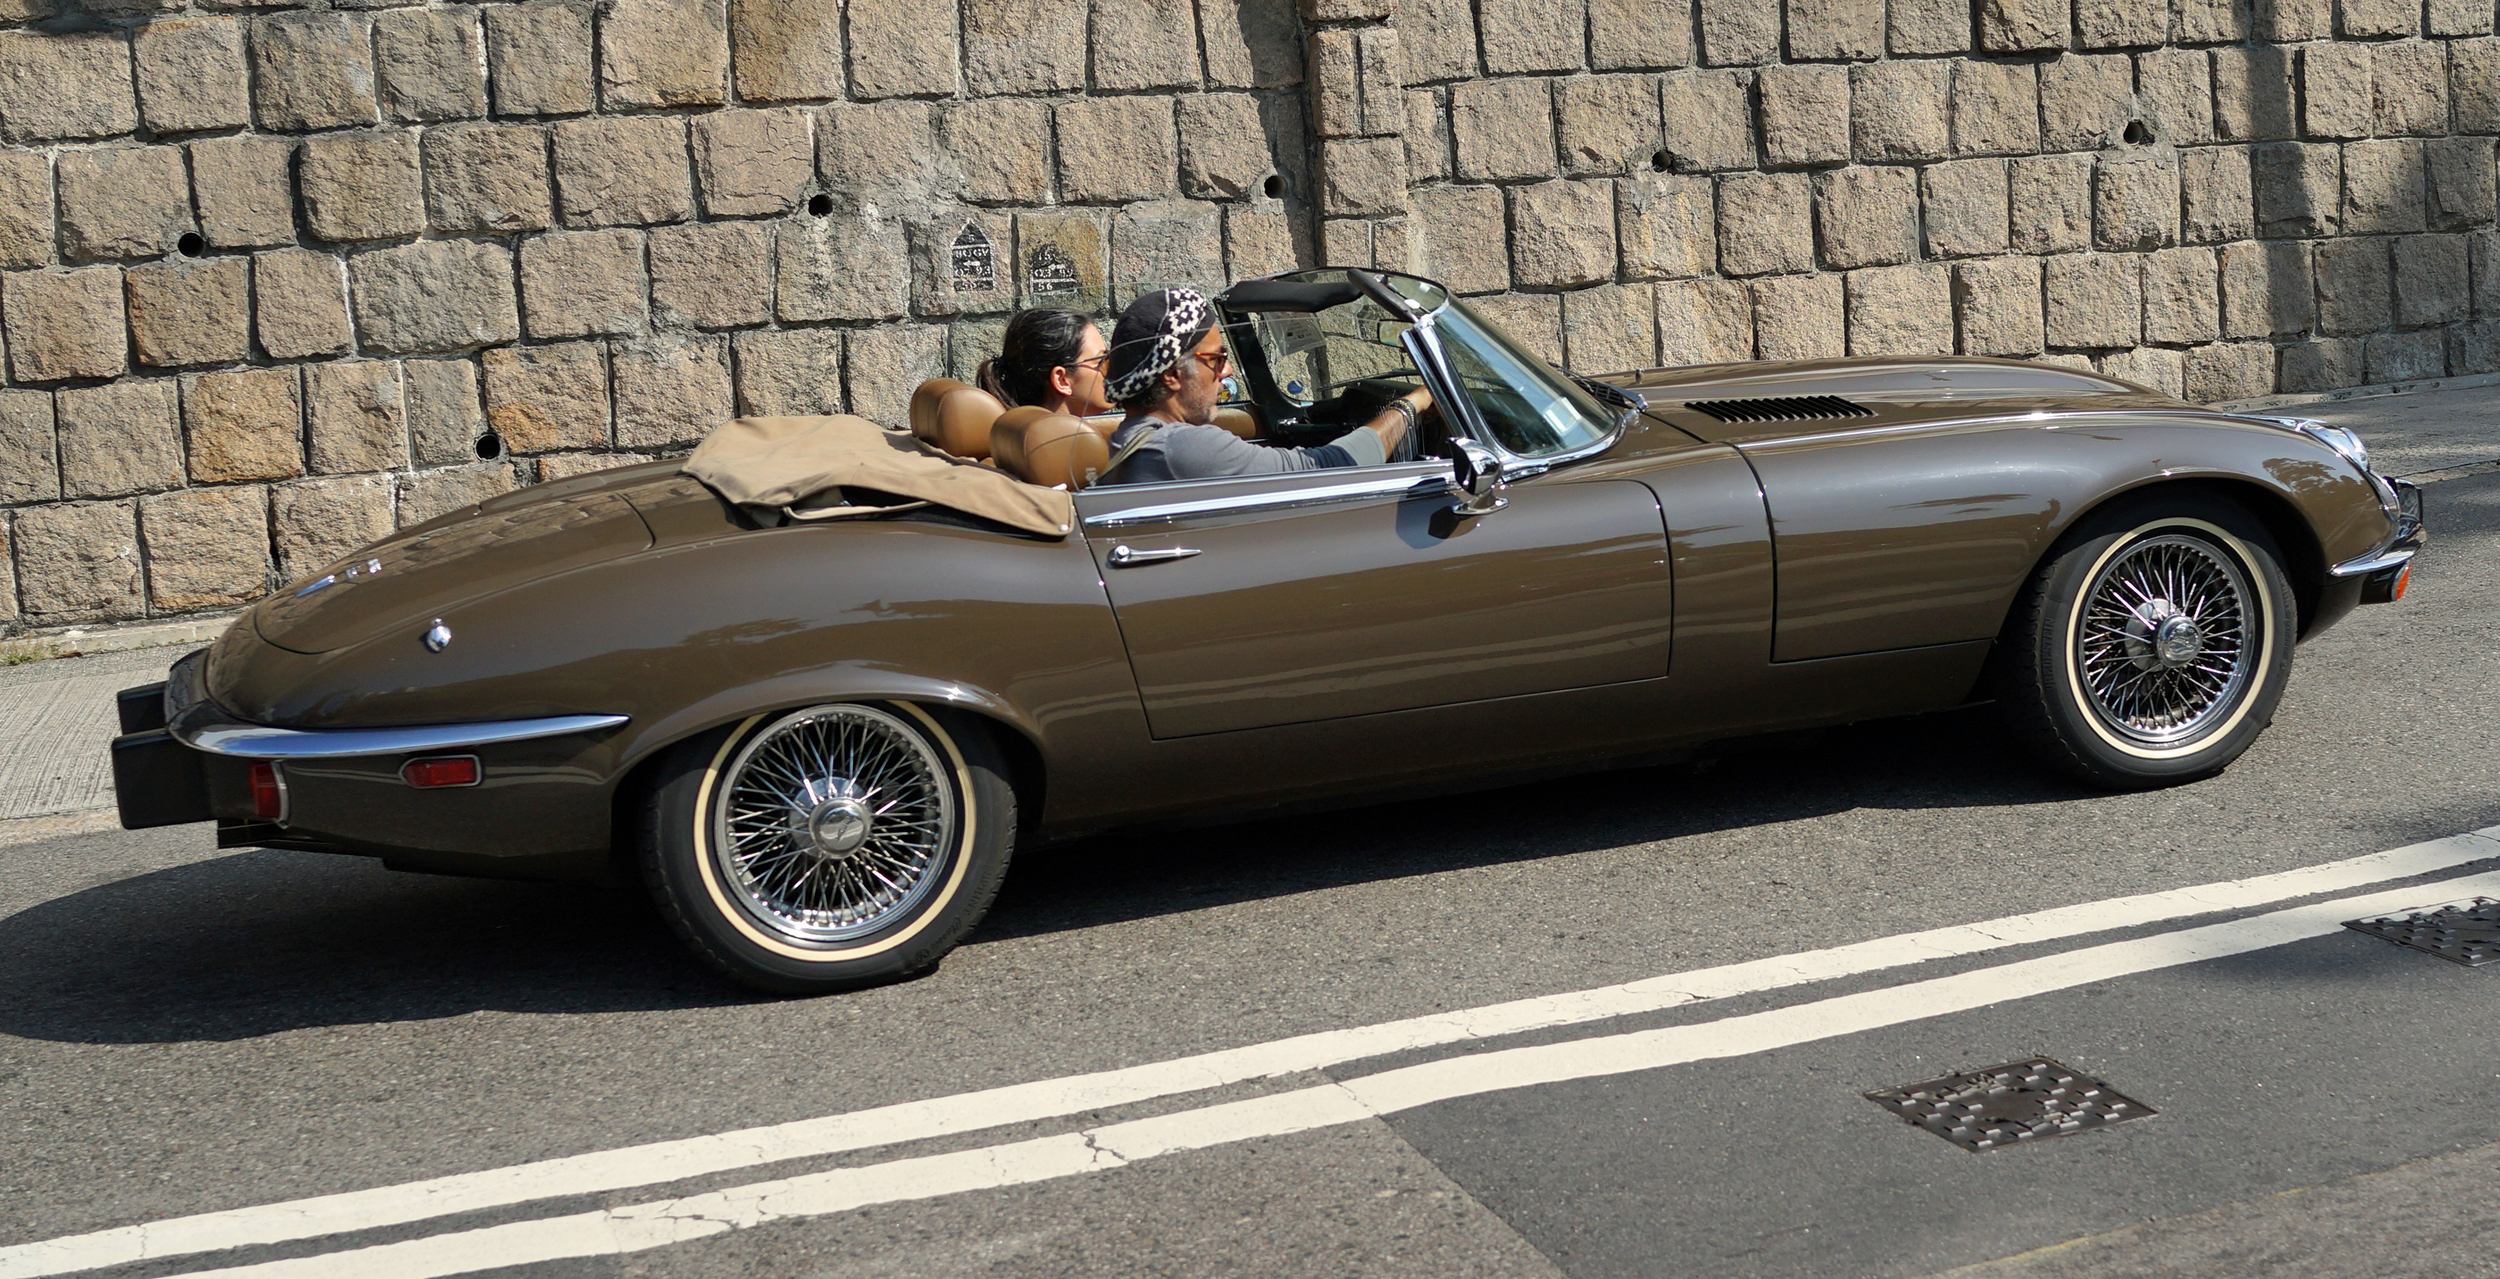 Oh my - what a gorgeous Jaguar E - Type.